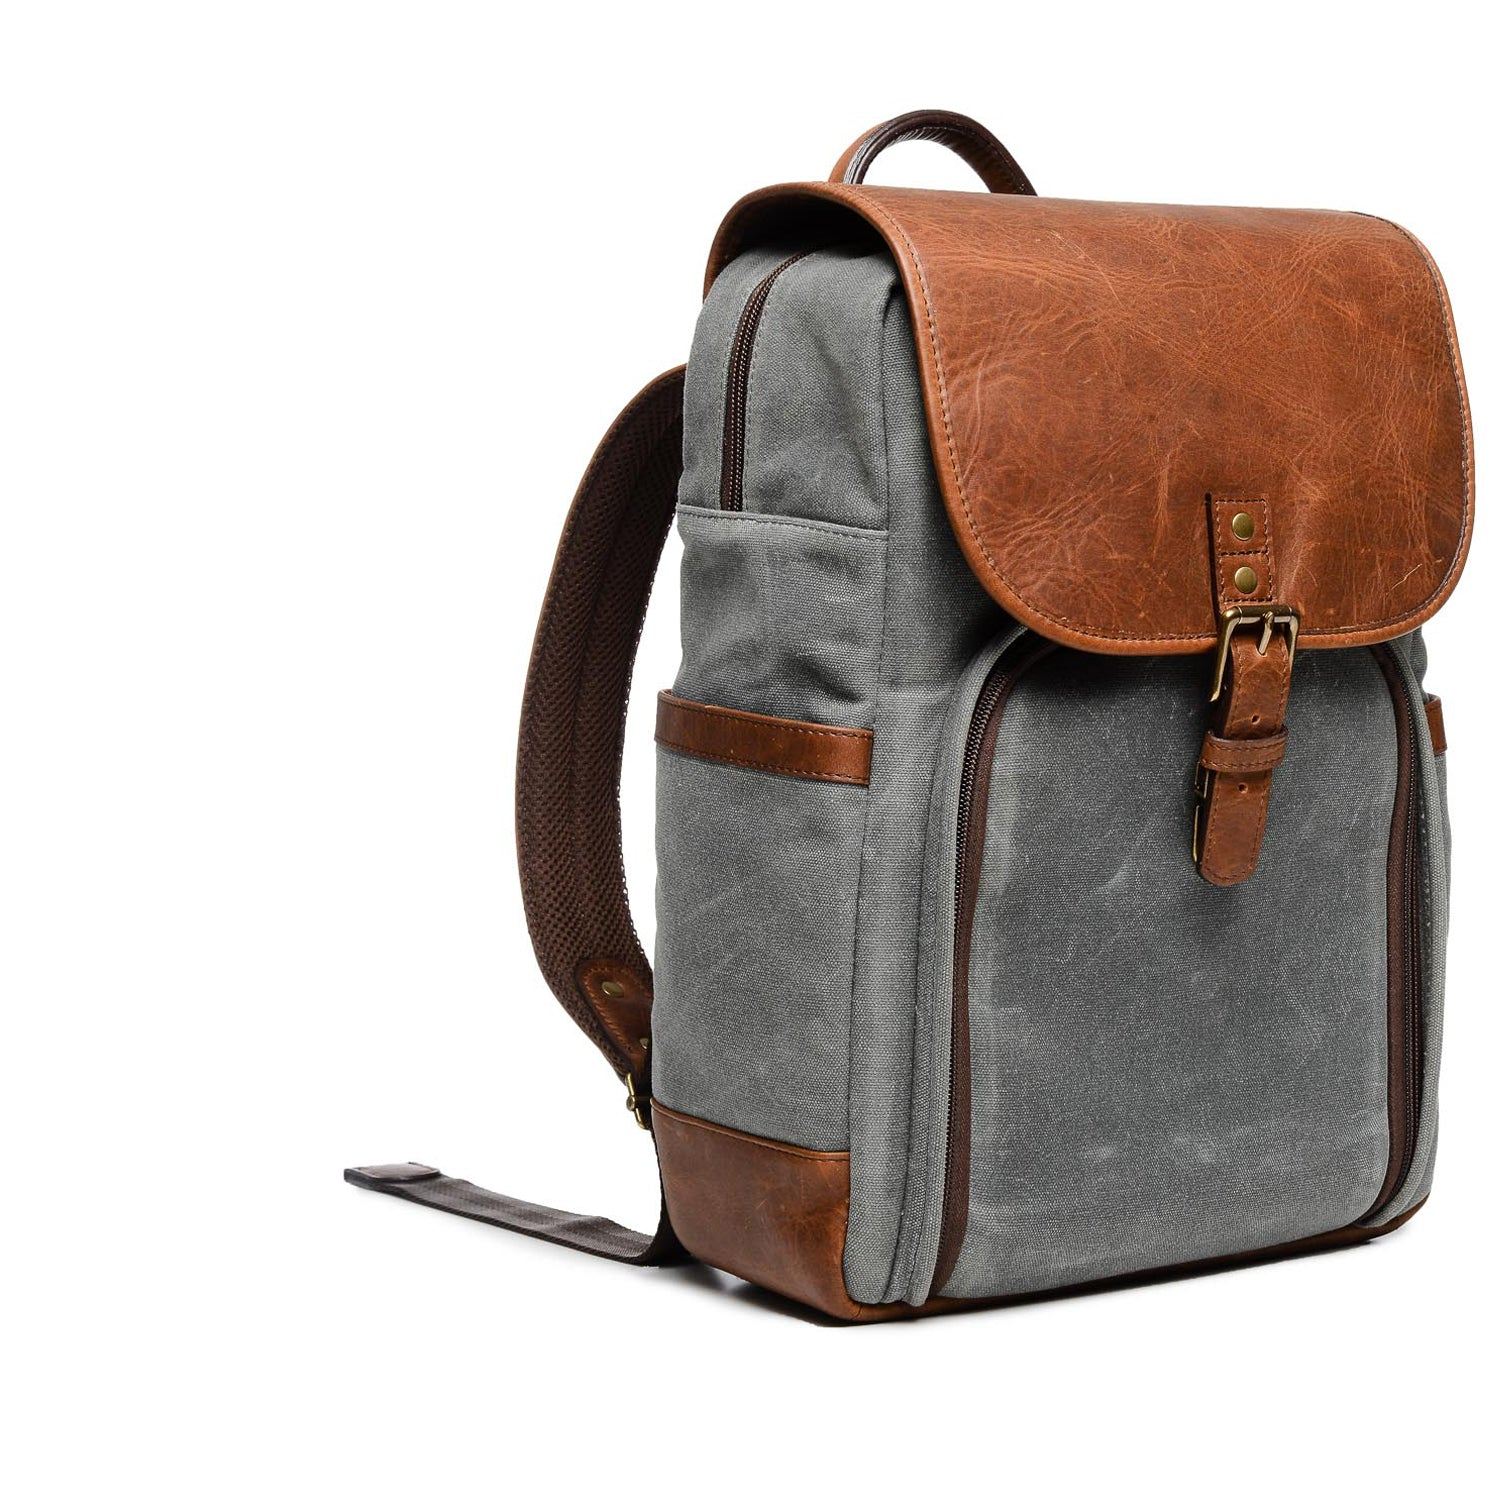 ONA Monterey Canvas/Leather Backpack - Smoke/Antique Cognac